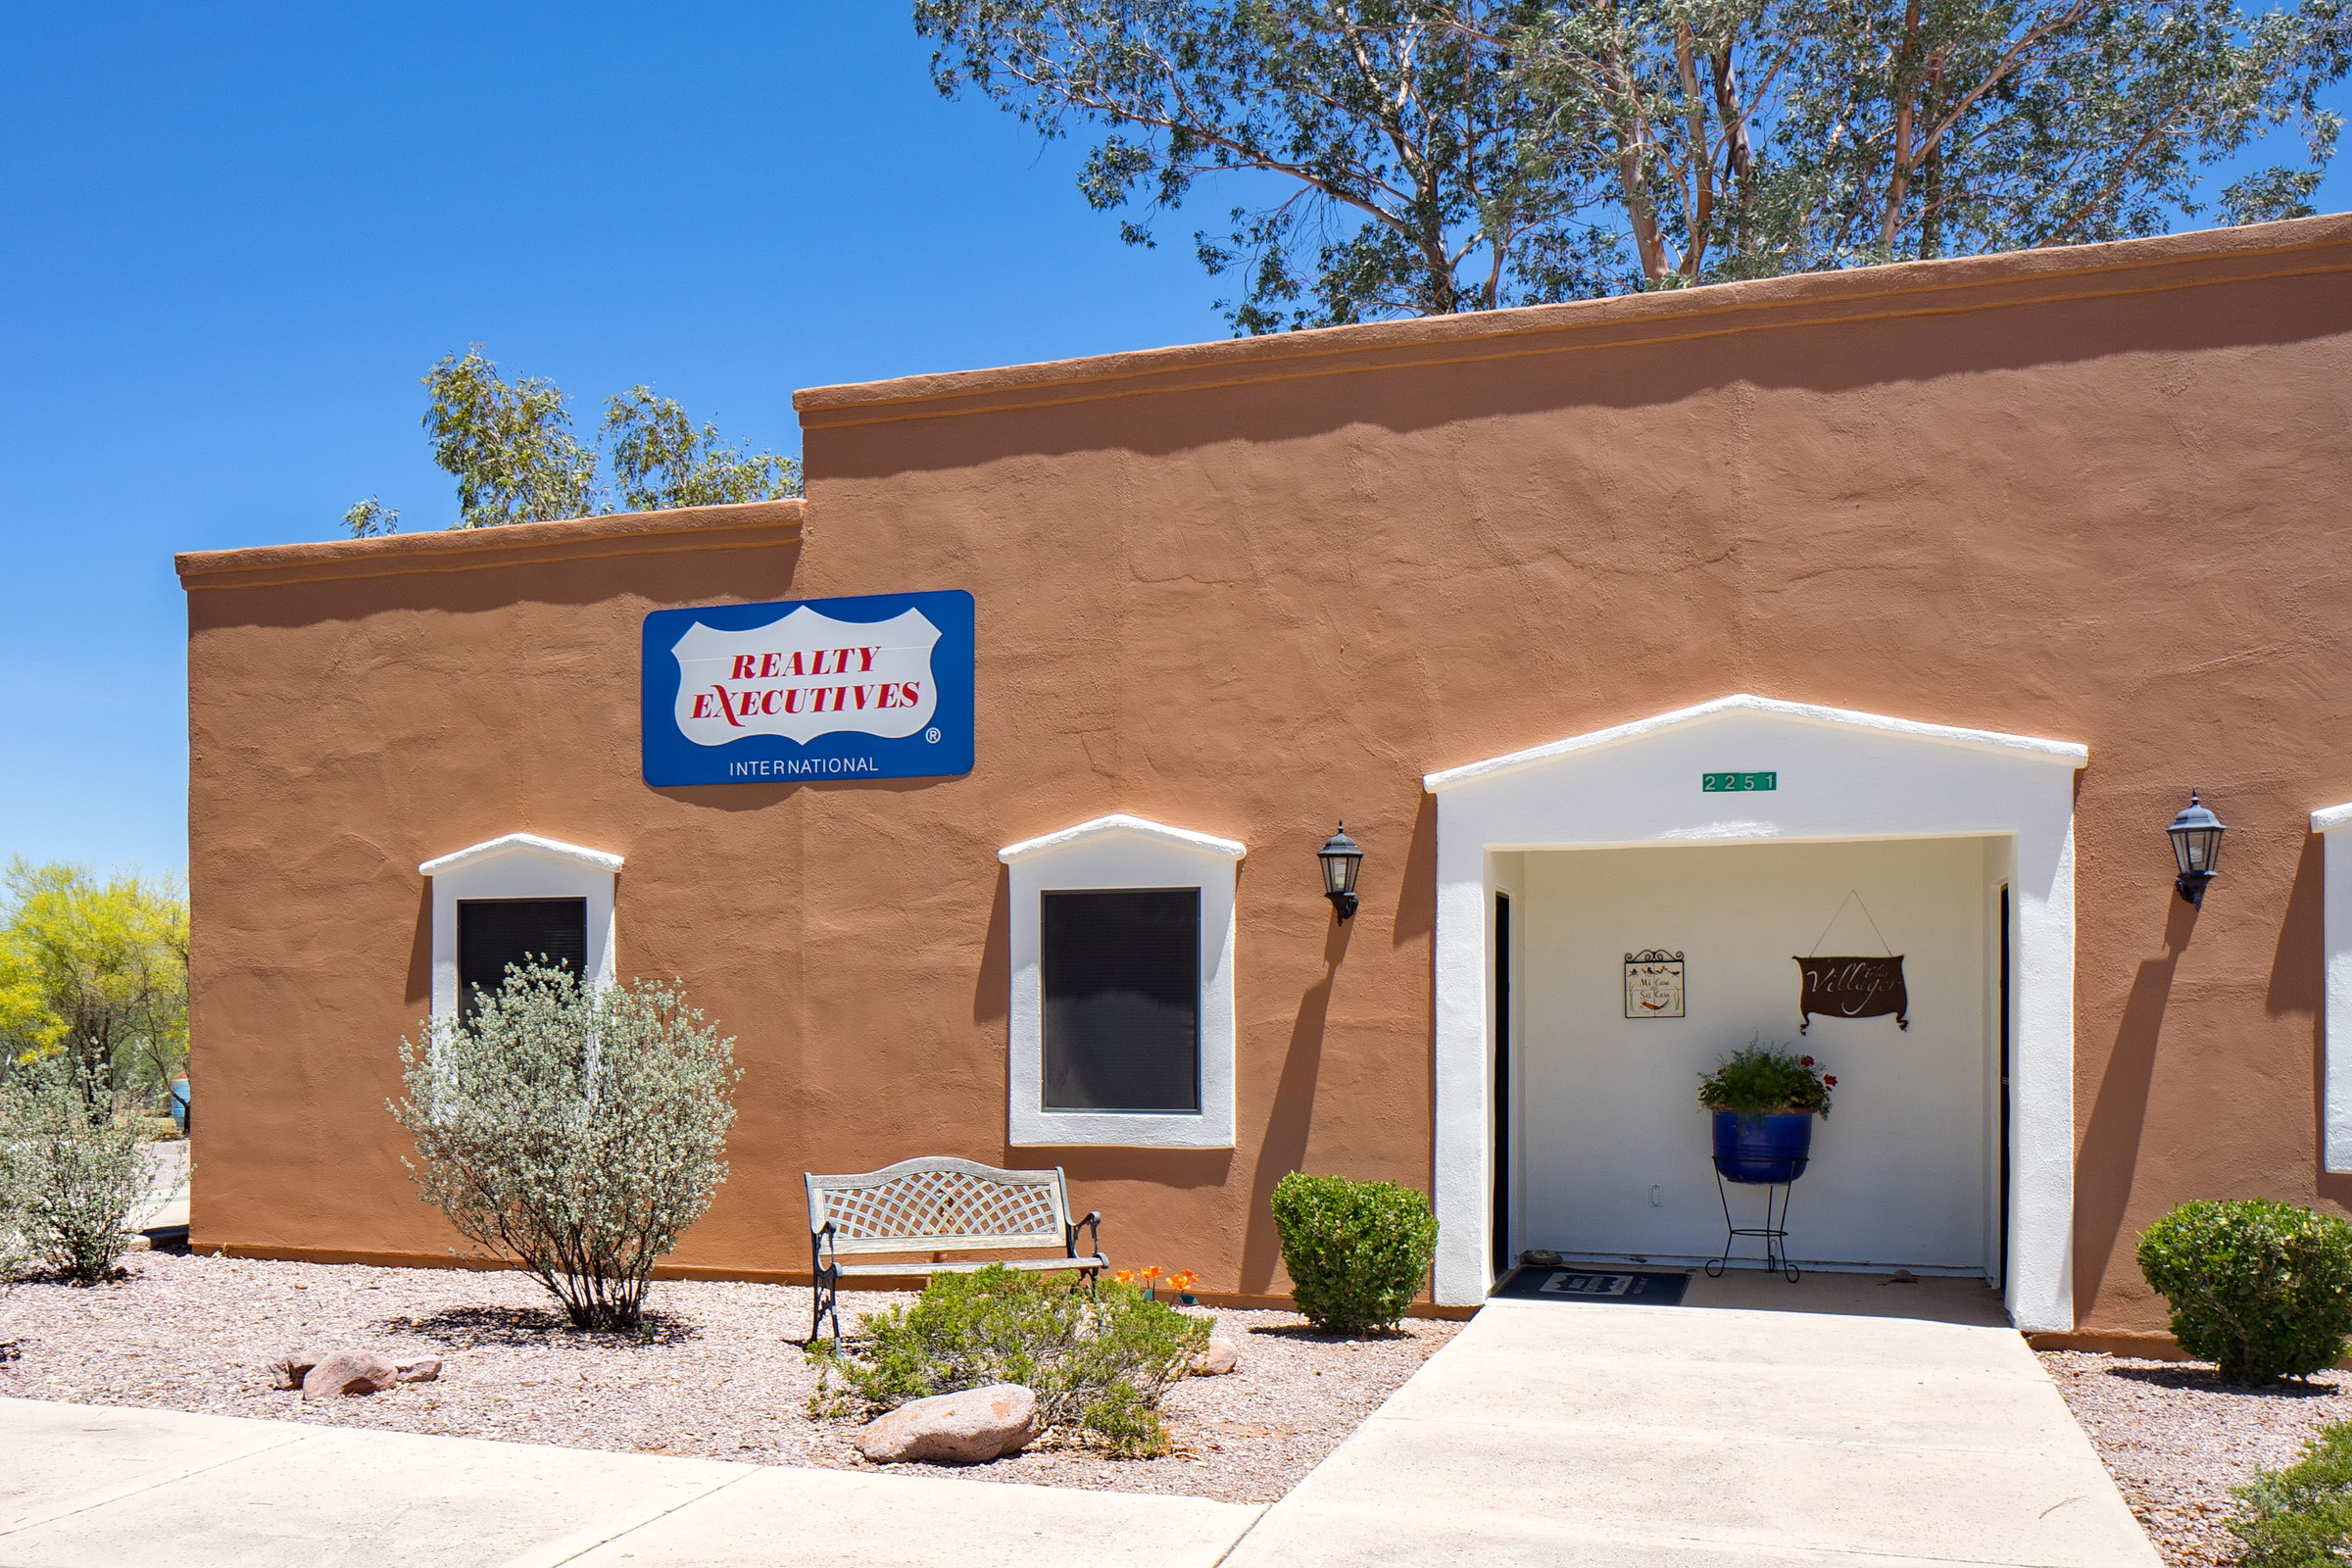 Realty Executives Tucson Elite (Tubac/Santa Cruz County)